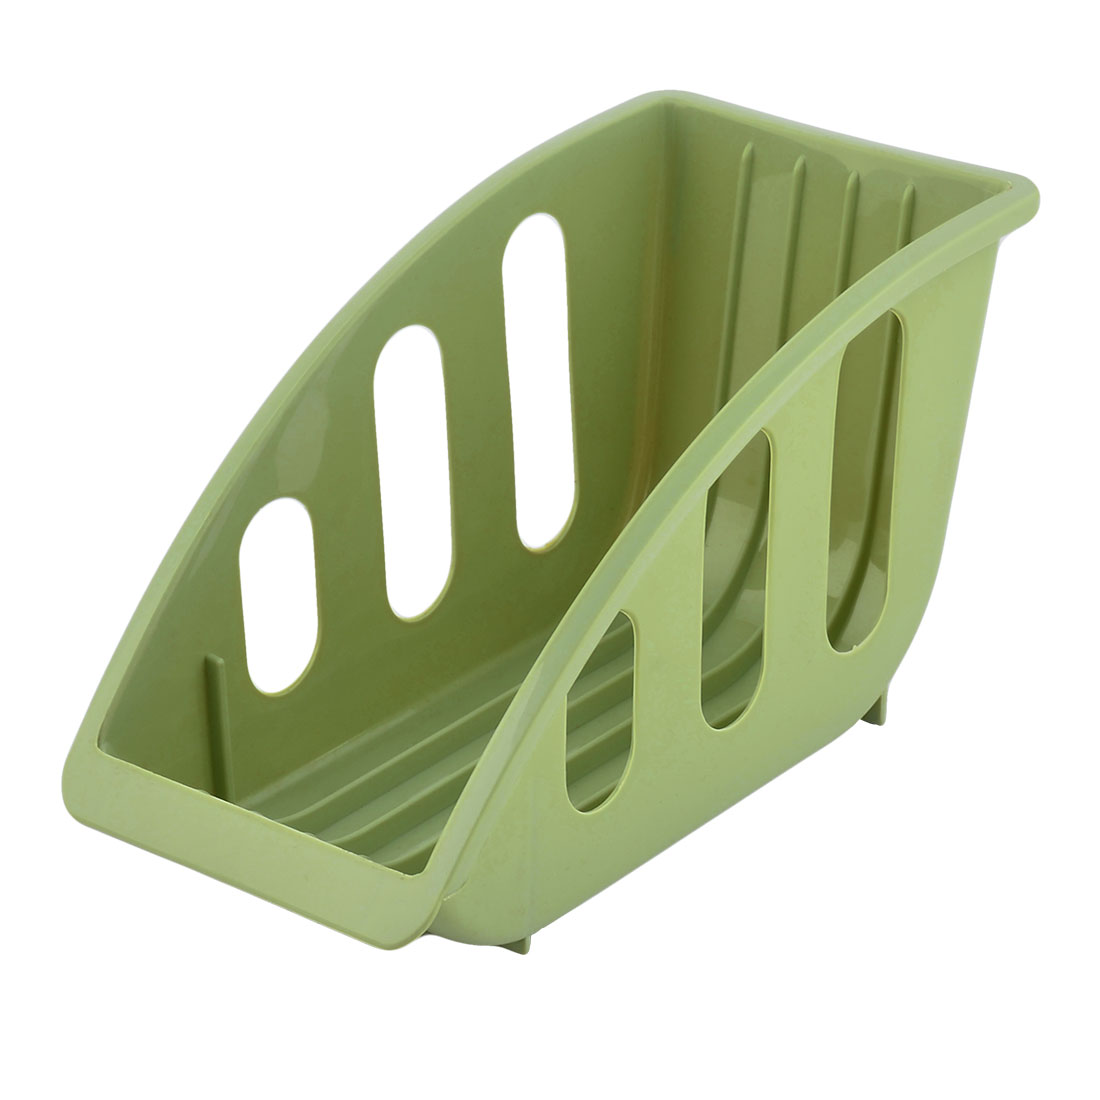 Home Plastic 5 Slots Dish Plate Holder Stacking Stand Drying Rack Case Green  sc 1 st  Walmart & Home Plastic 5 Slots Dish Plate Holder Stacking Stand Drying Rack ...